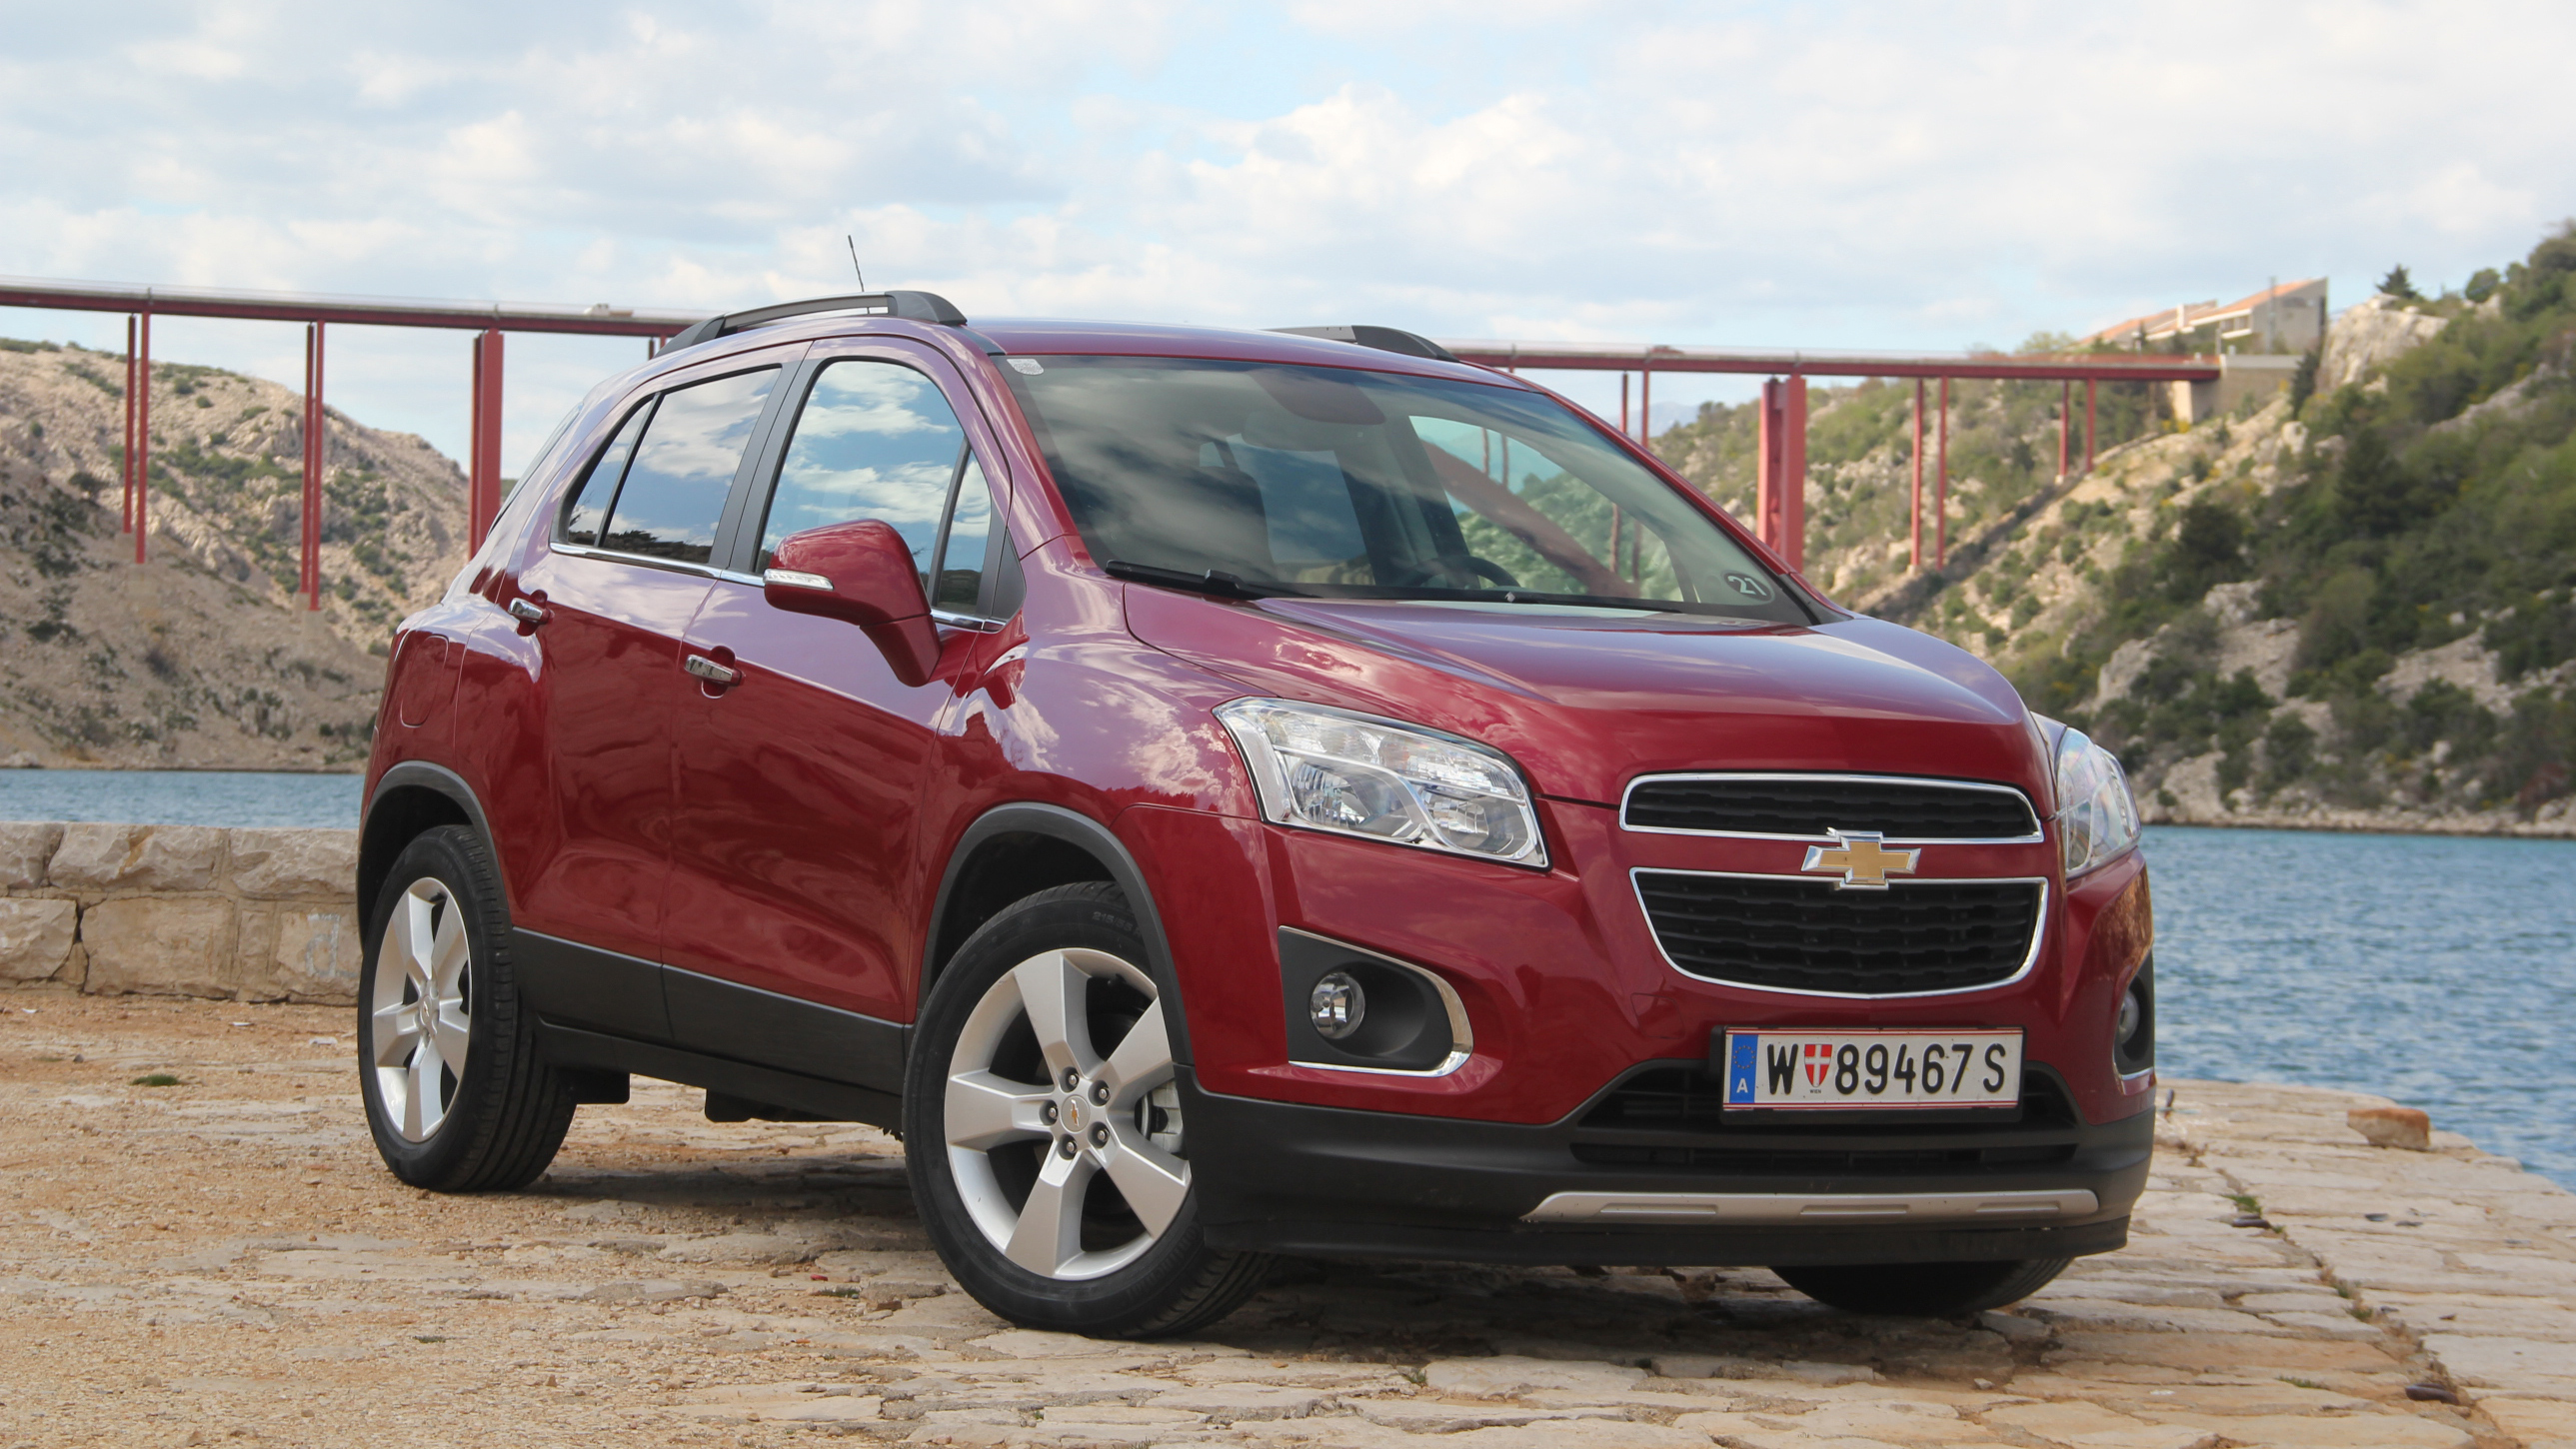 essai vid o chevrolet trax vente d trax e. Black Bedroom Furniture Sets. Home Design Ideas